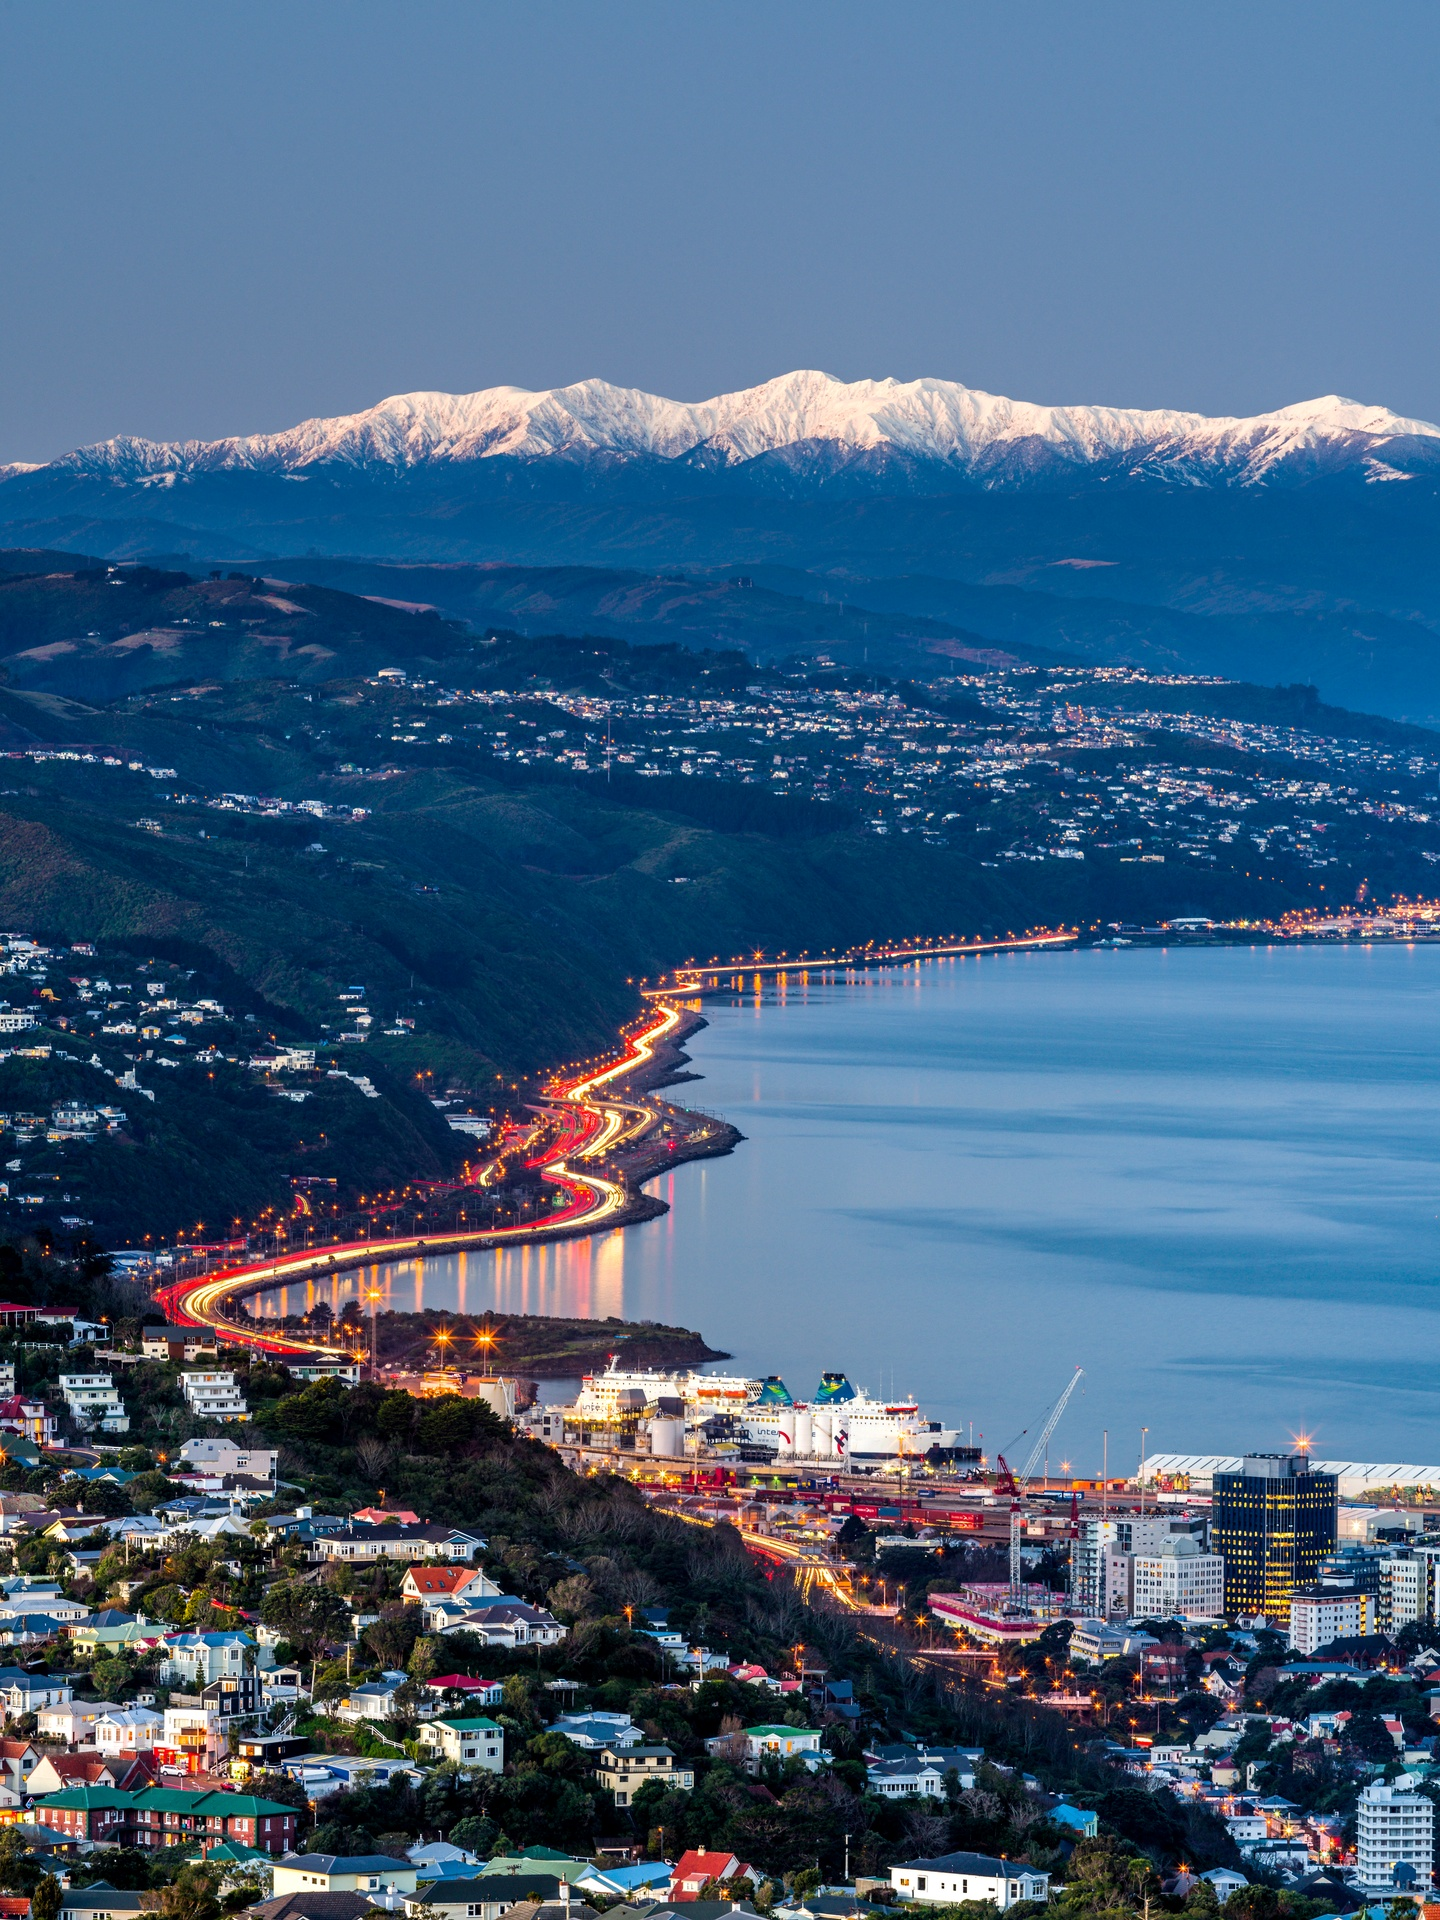 Wellington City at night (image by Rob Suisted care of Wellington Tourism).